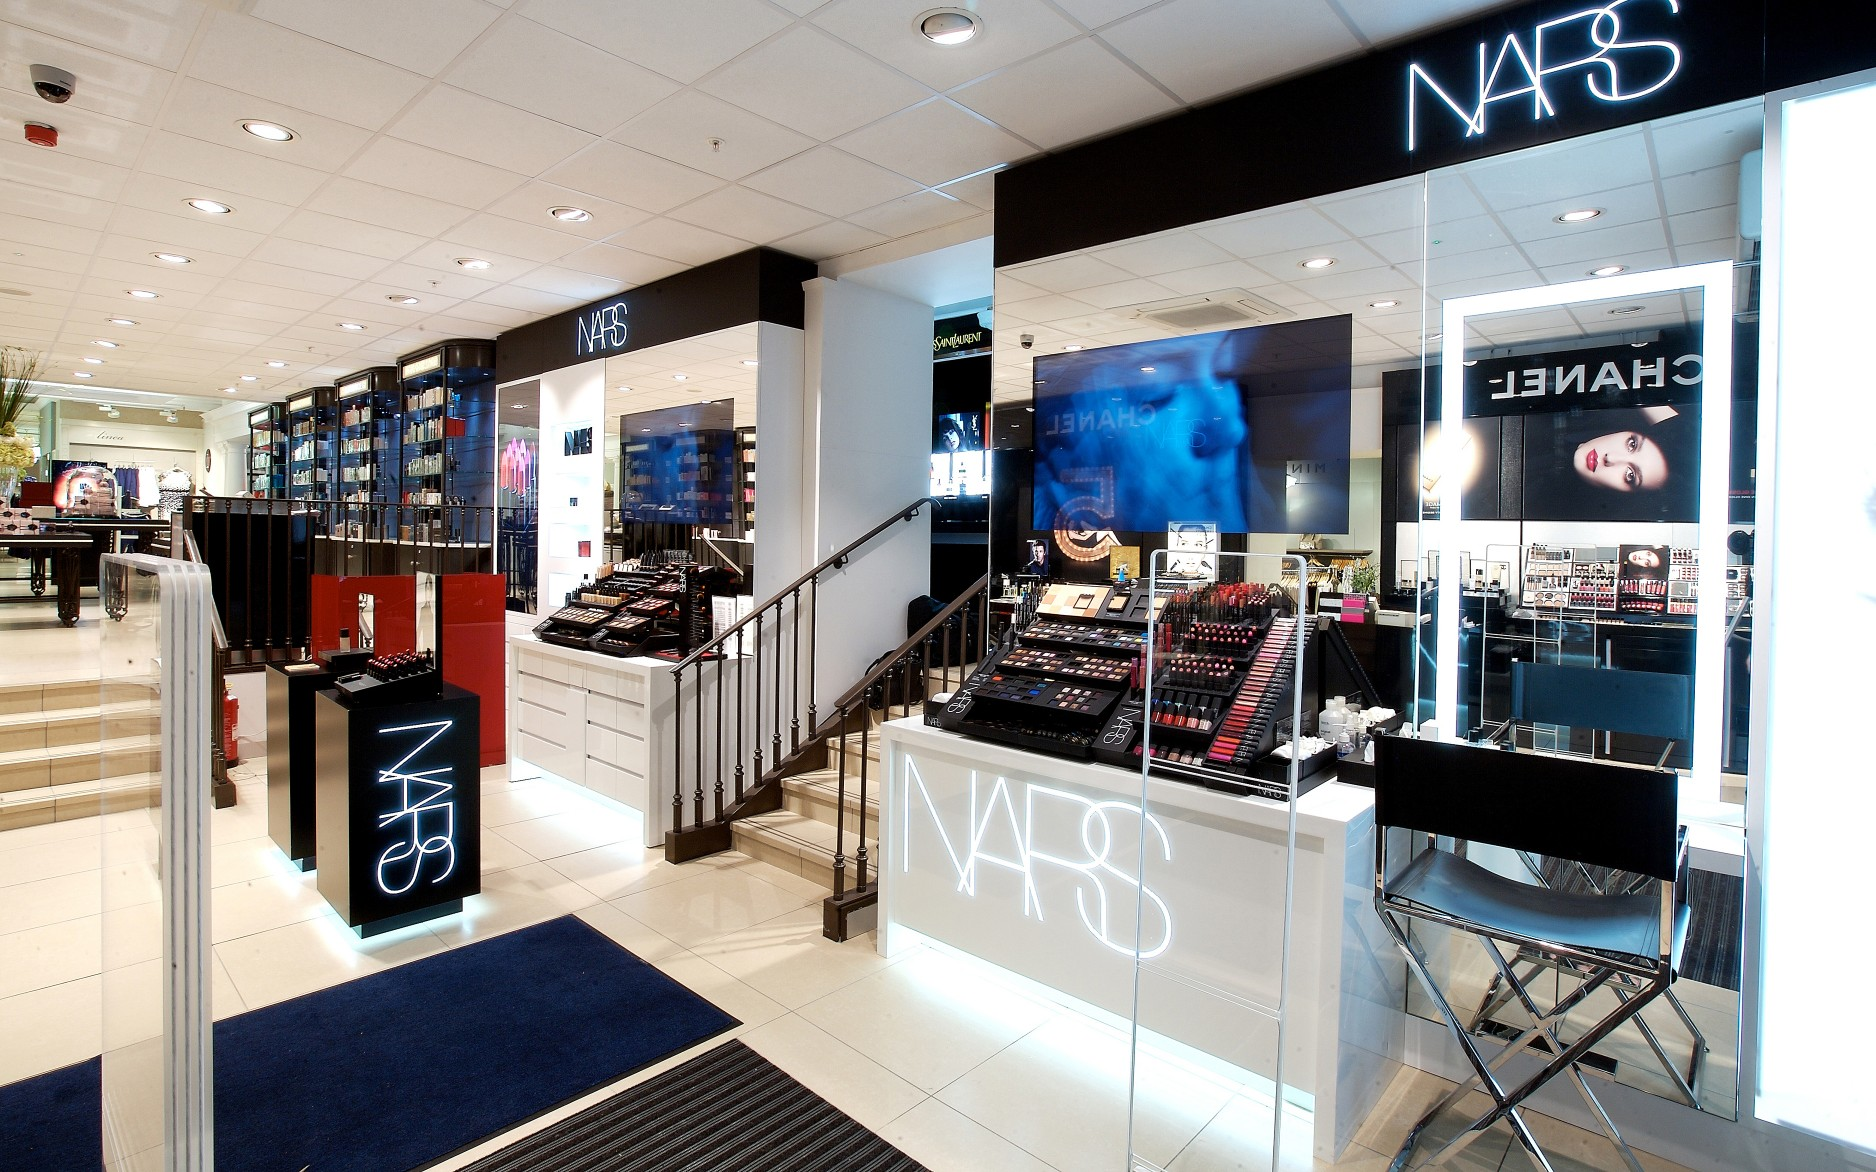 The luminaires use a high color rendering option to bring out colors on the makeup counters.